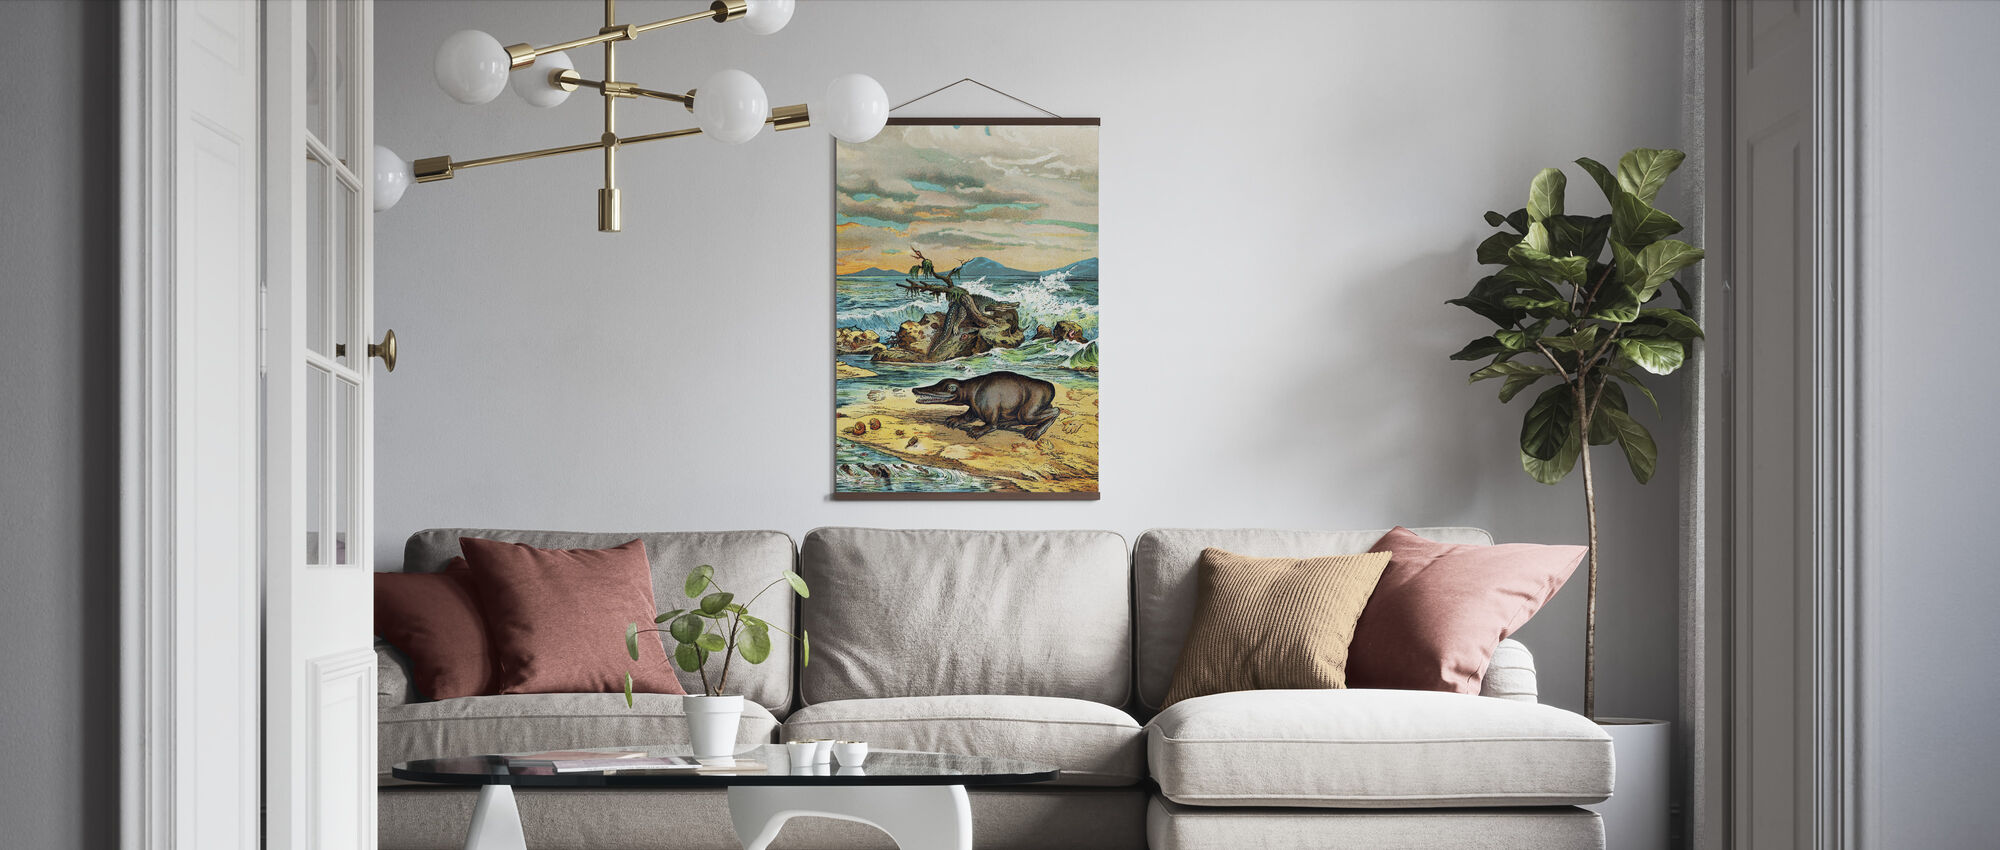 Triassic Coastal Environment - Poster - Living Room